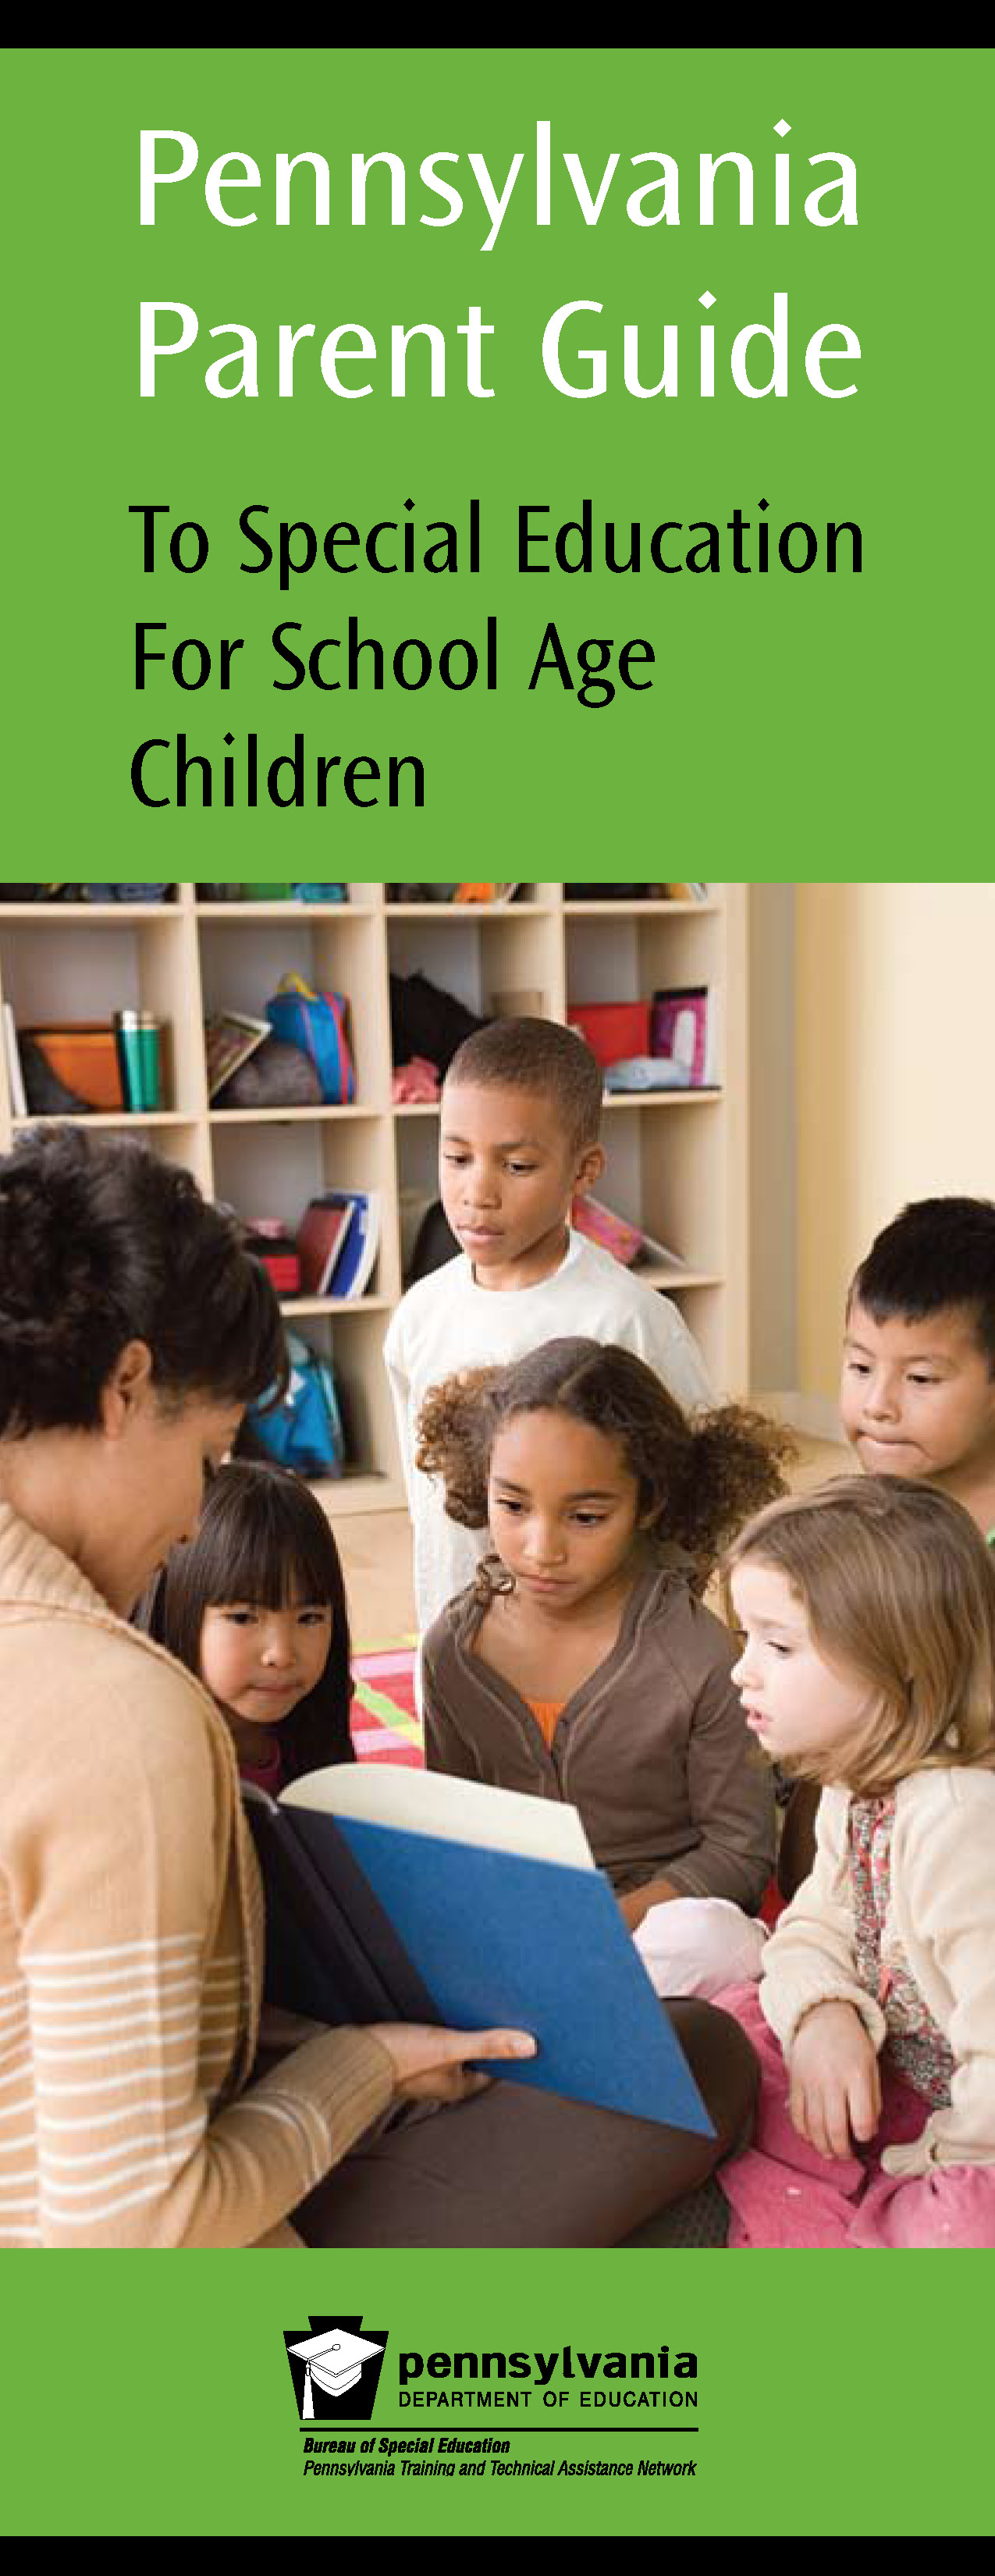 Pennsylvania Parent Guide to Special Education for School Age Children